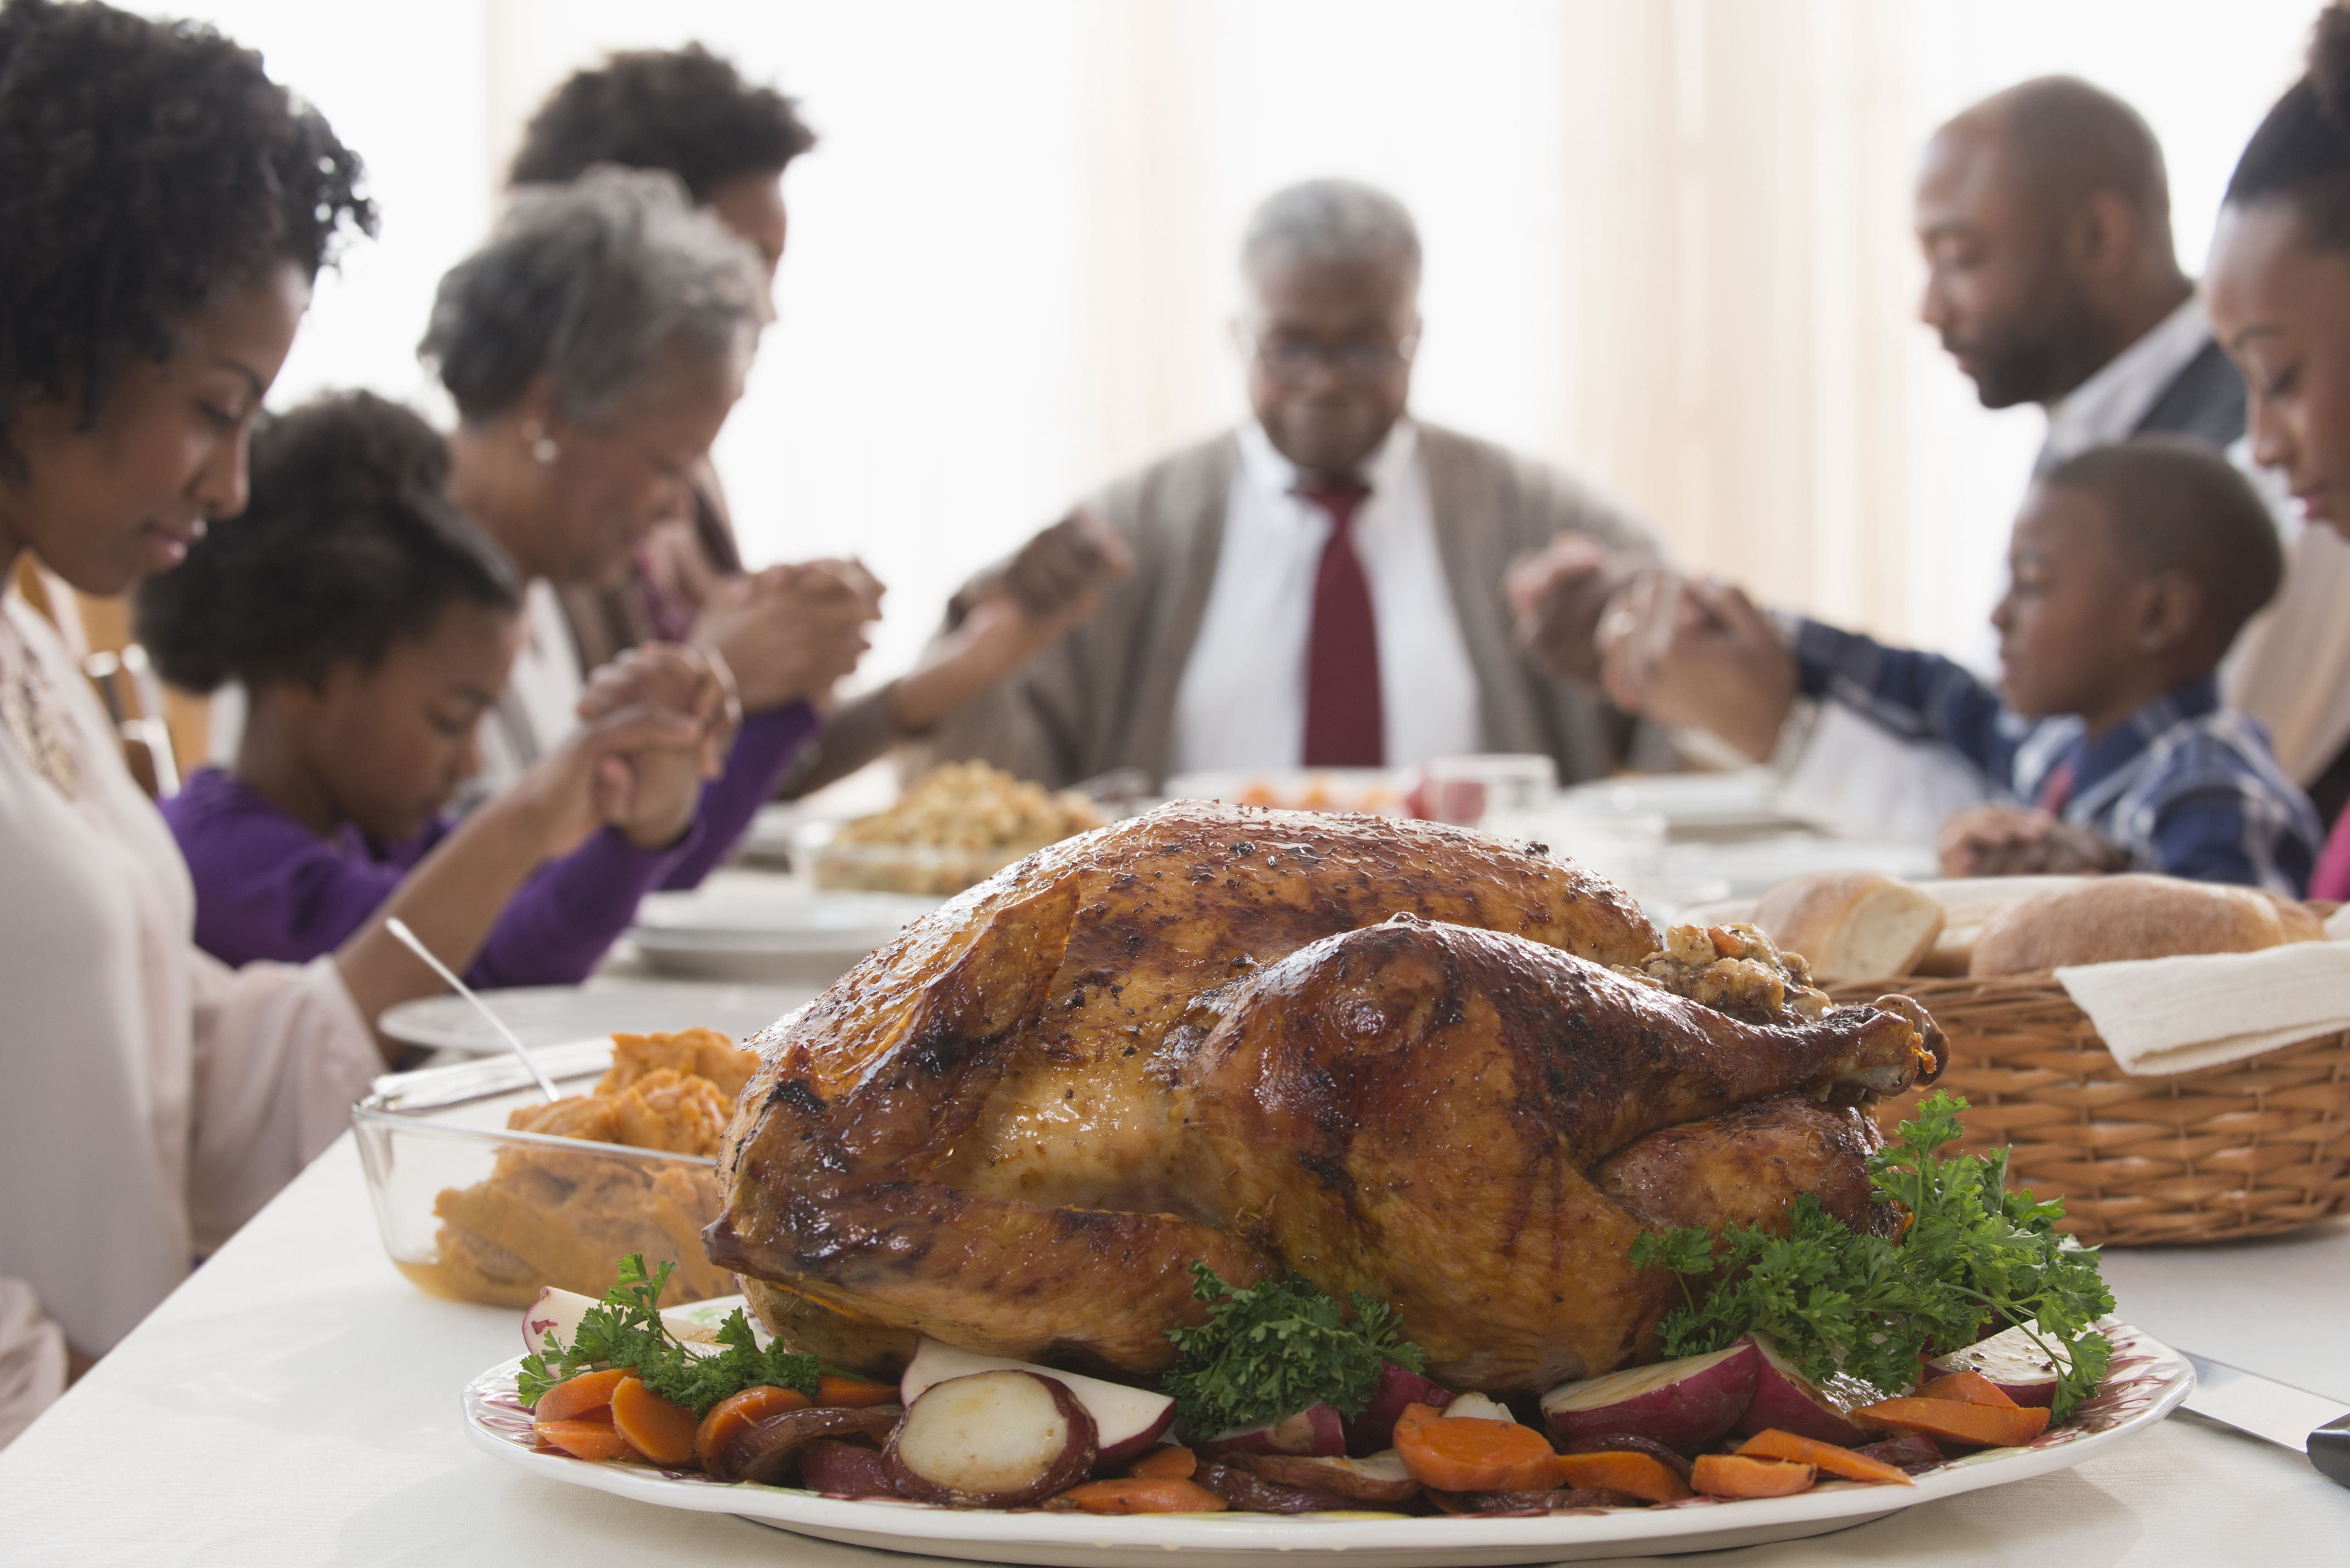 the truth behind the tradition of thanksgiving Thanksgiving: the story behind traditions nov 18, 2011 by deepa gopal it is that time of the year again when families gather around the table to share a meal and.